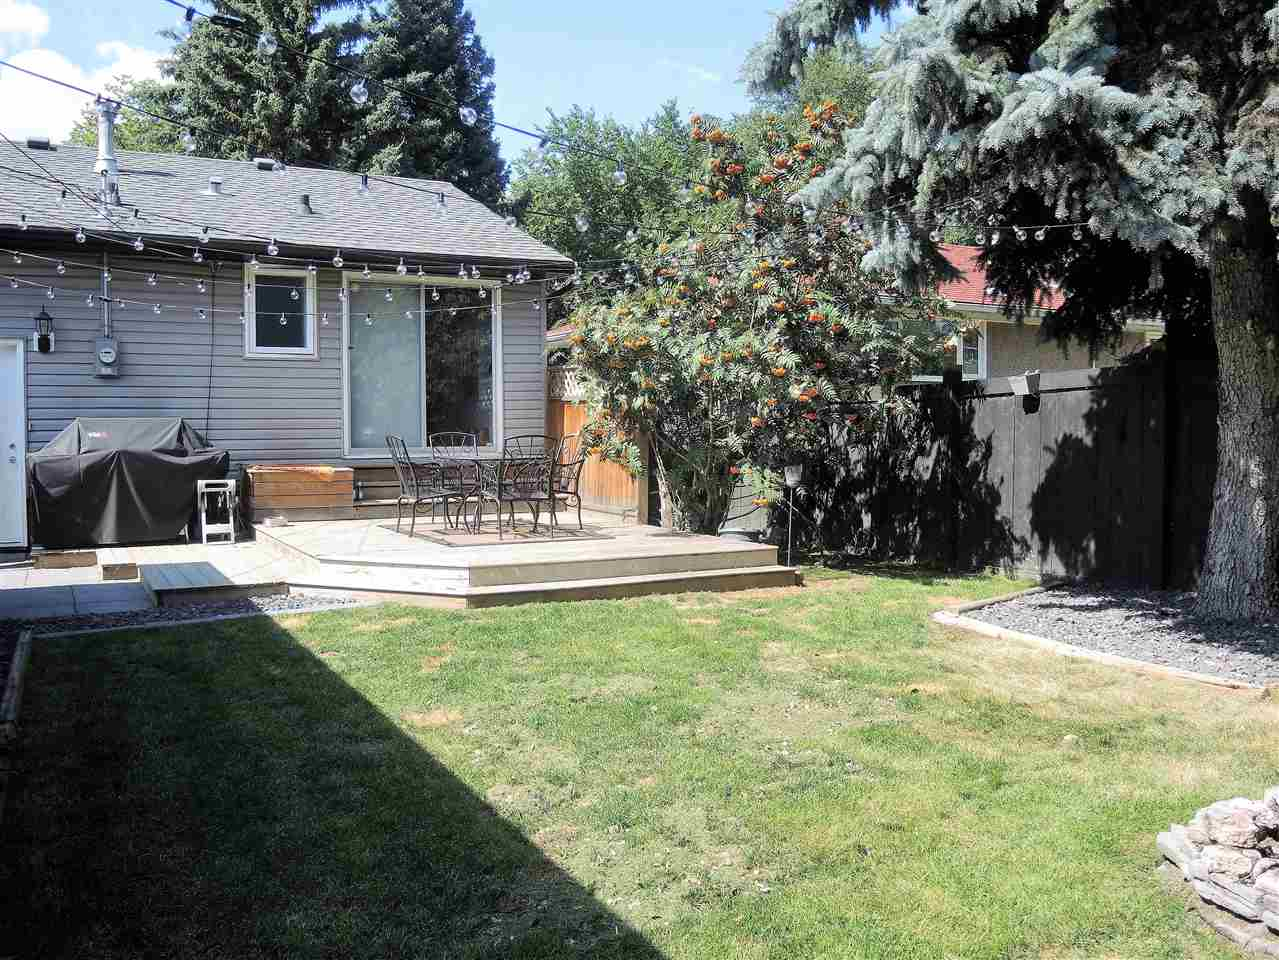 Photo 22: 9215 148 Street in Edmonton: Zone 10 House for sale : MLS® # E4078154